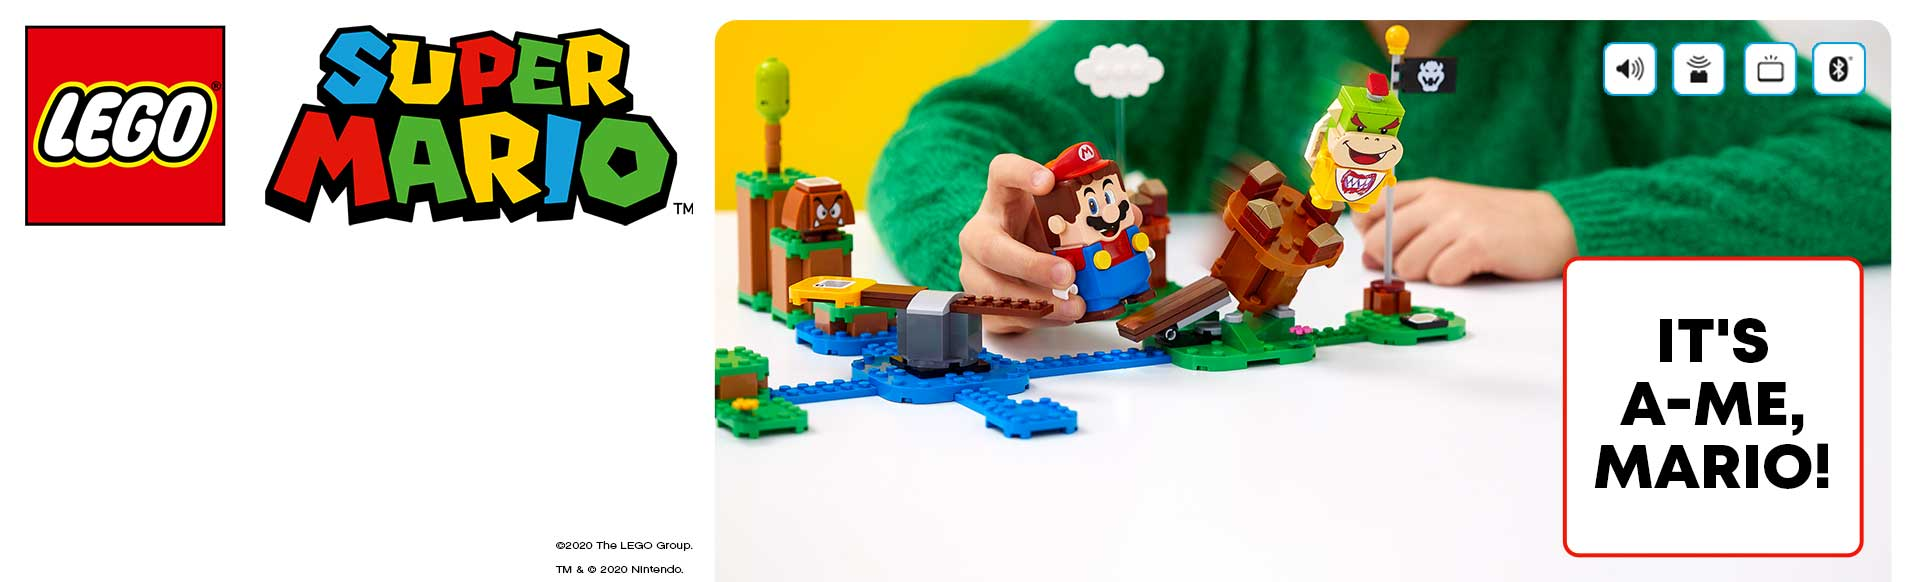 LEGO Super Mario novelty